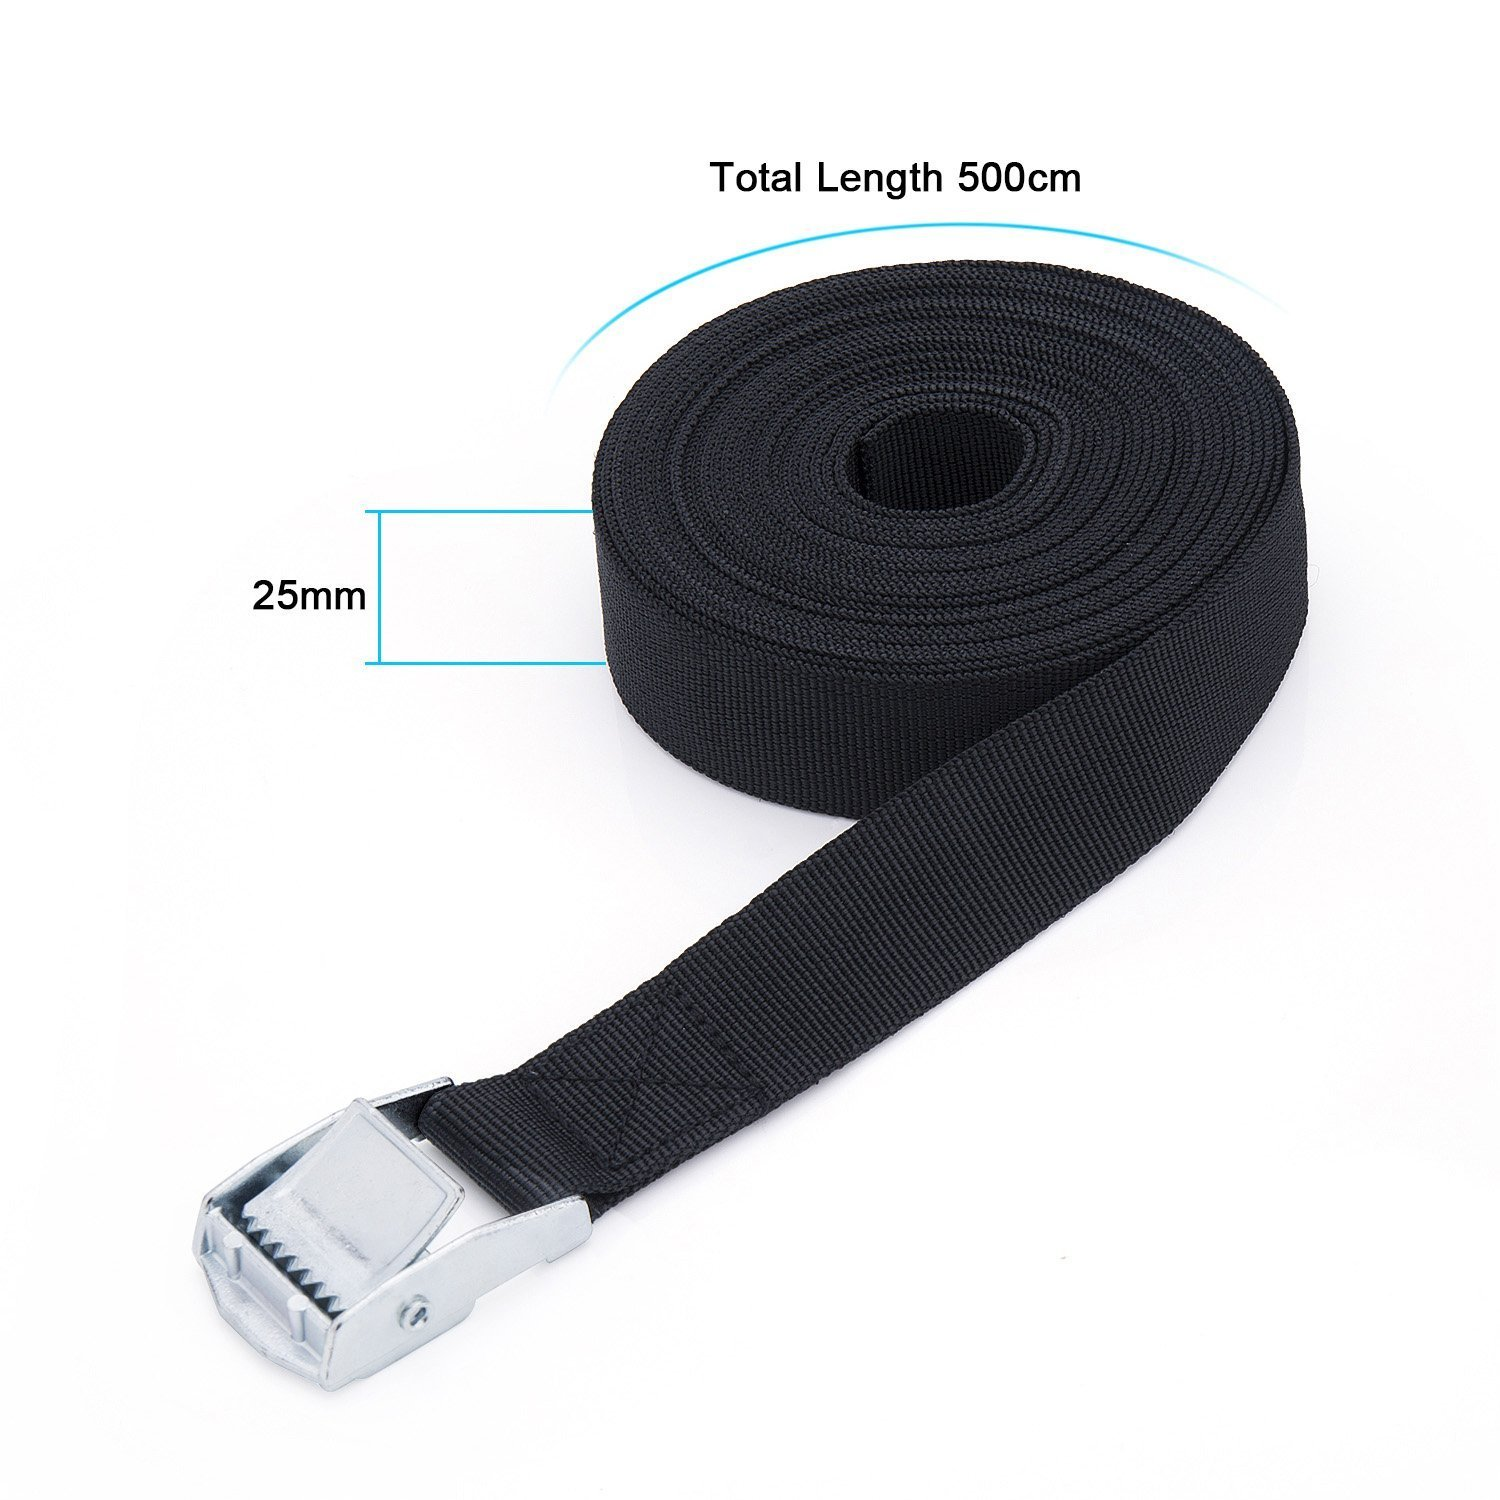 Trailer Heavy Duty Luggage Tie Down Strap with Metal Cam Buckle for Motorcycle Truck Hold and Travel Kits Cargo 5Mx25MM ZWOOS 4pcs Lashing Strap Tensioning Belts